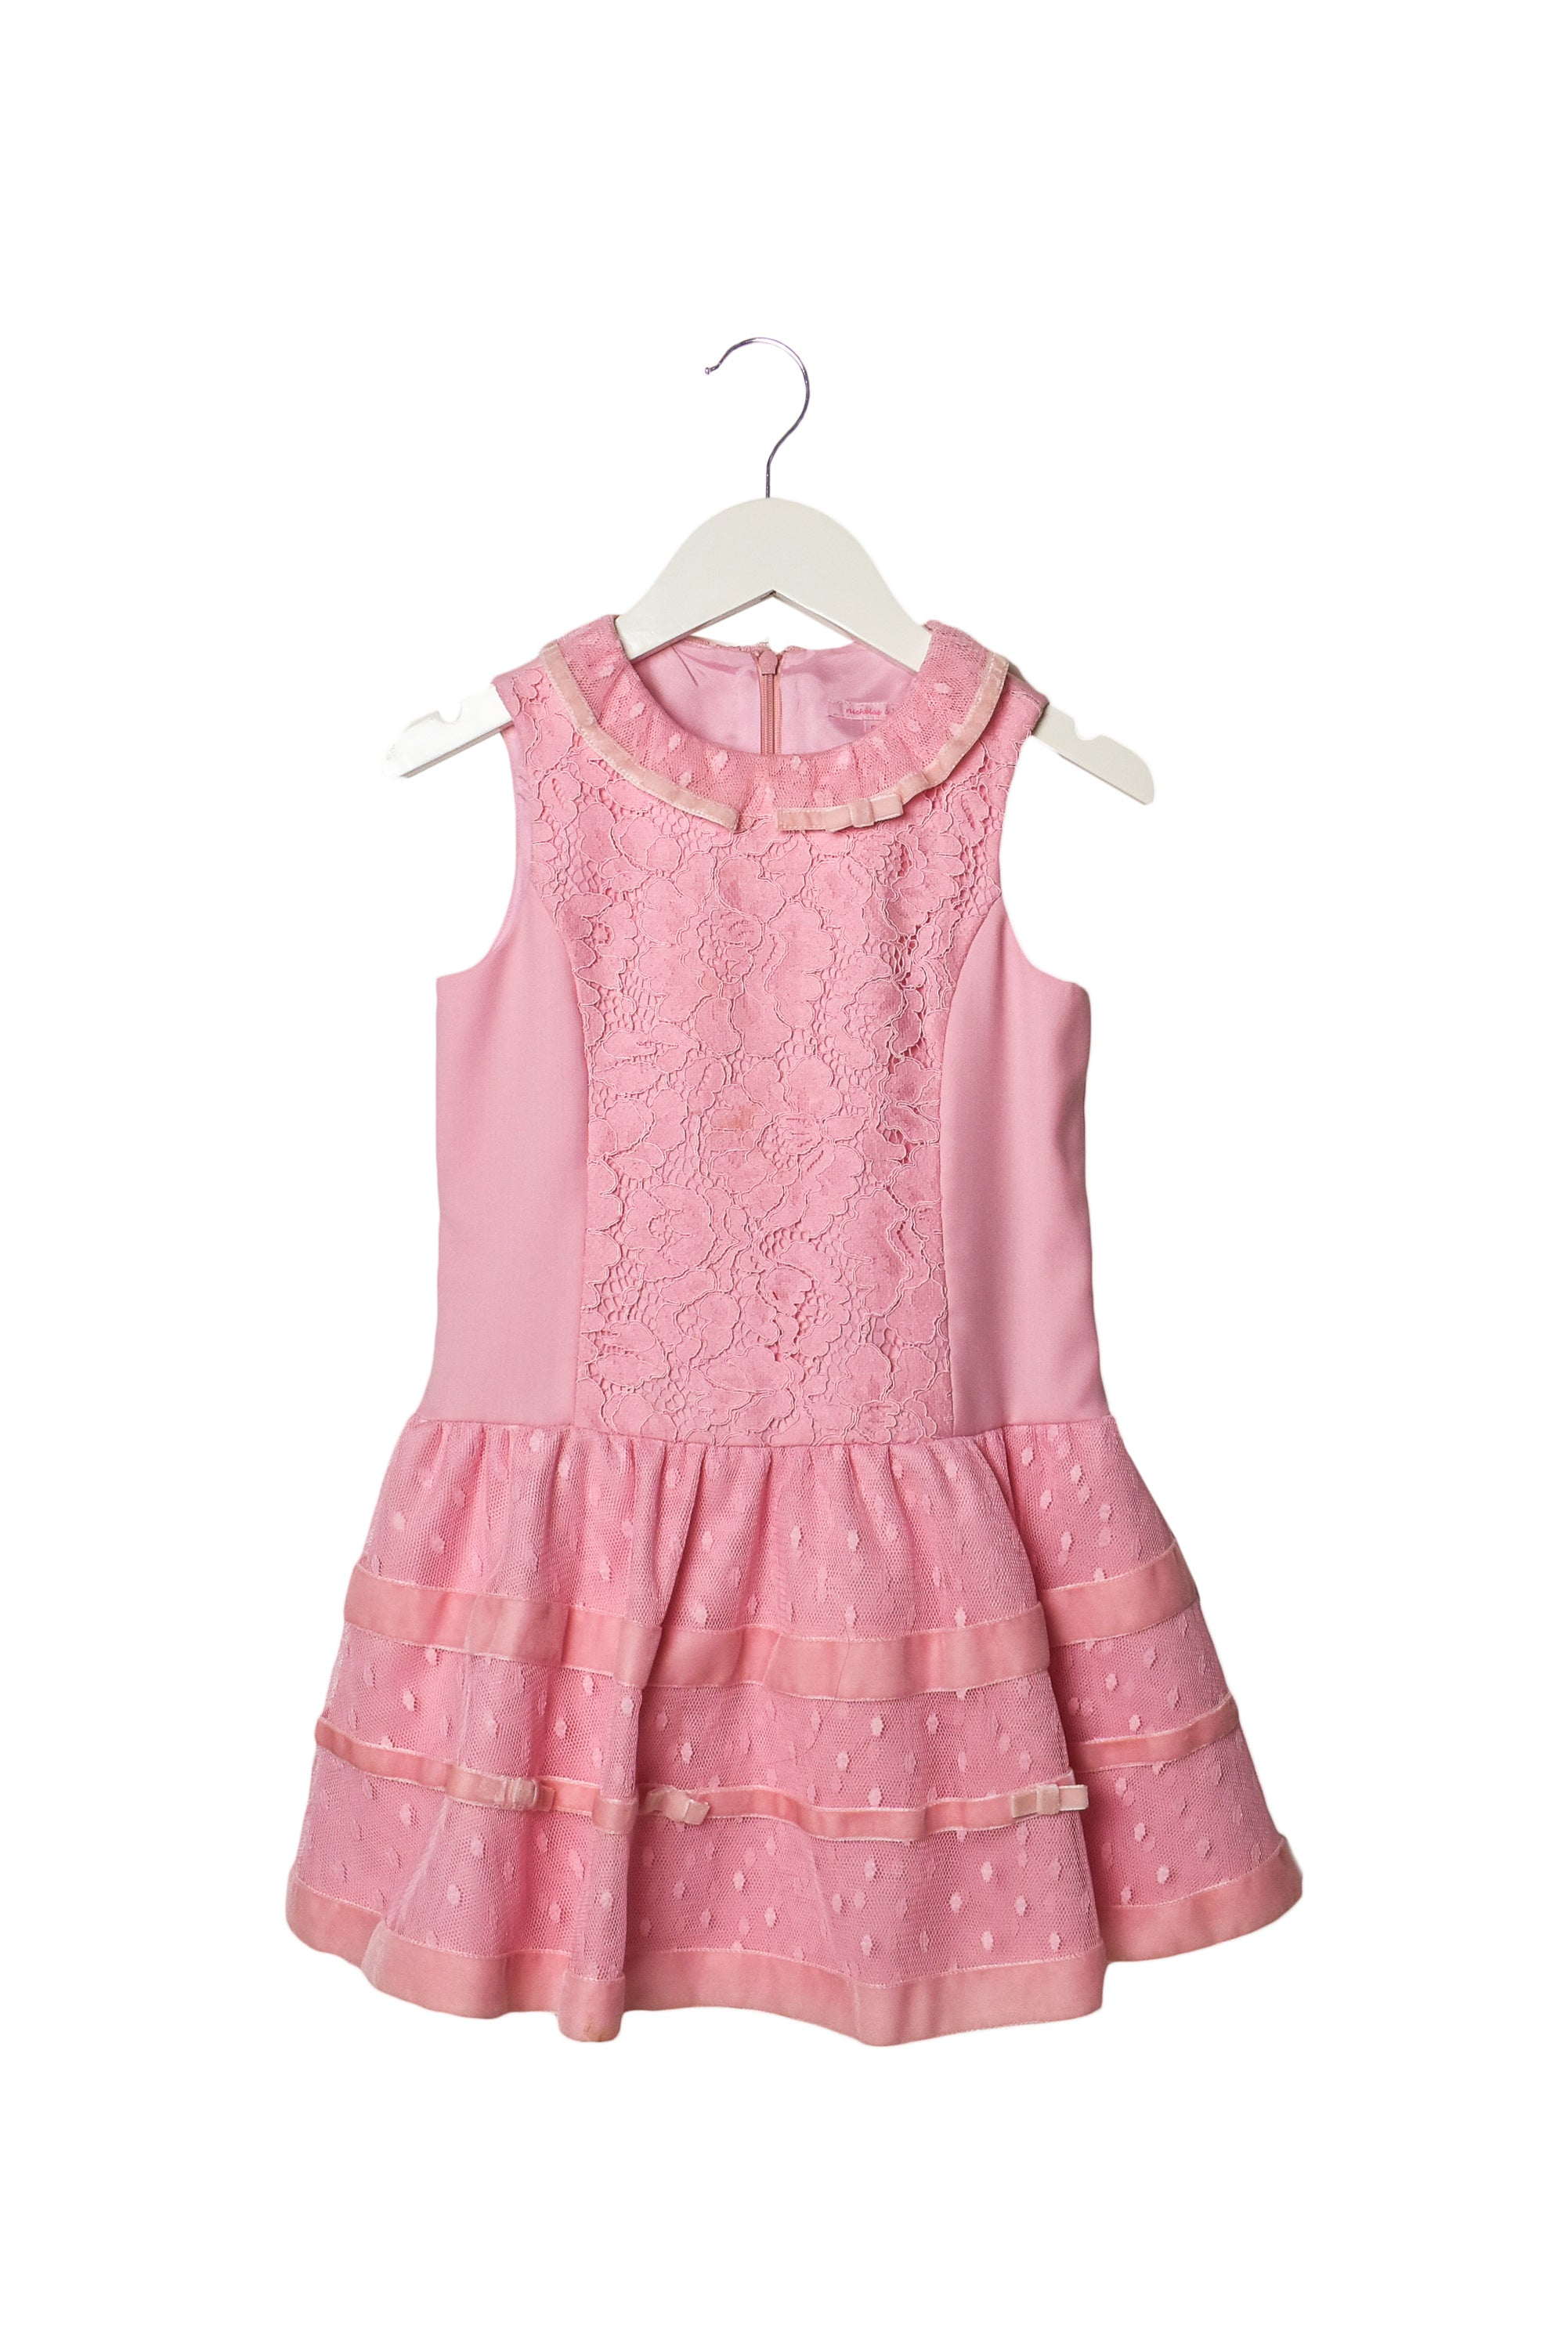 10006896 Nicholas & Bears Kids~Dress 6T at Retykle